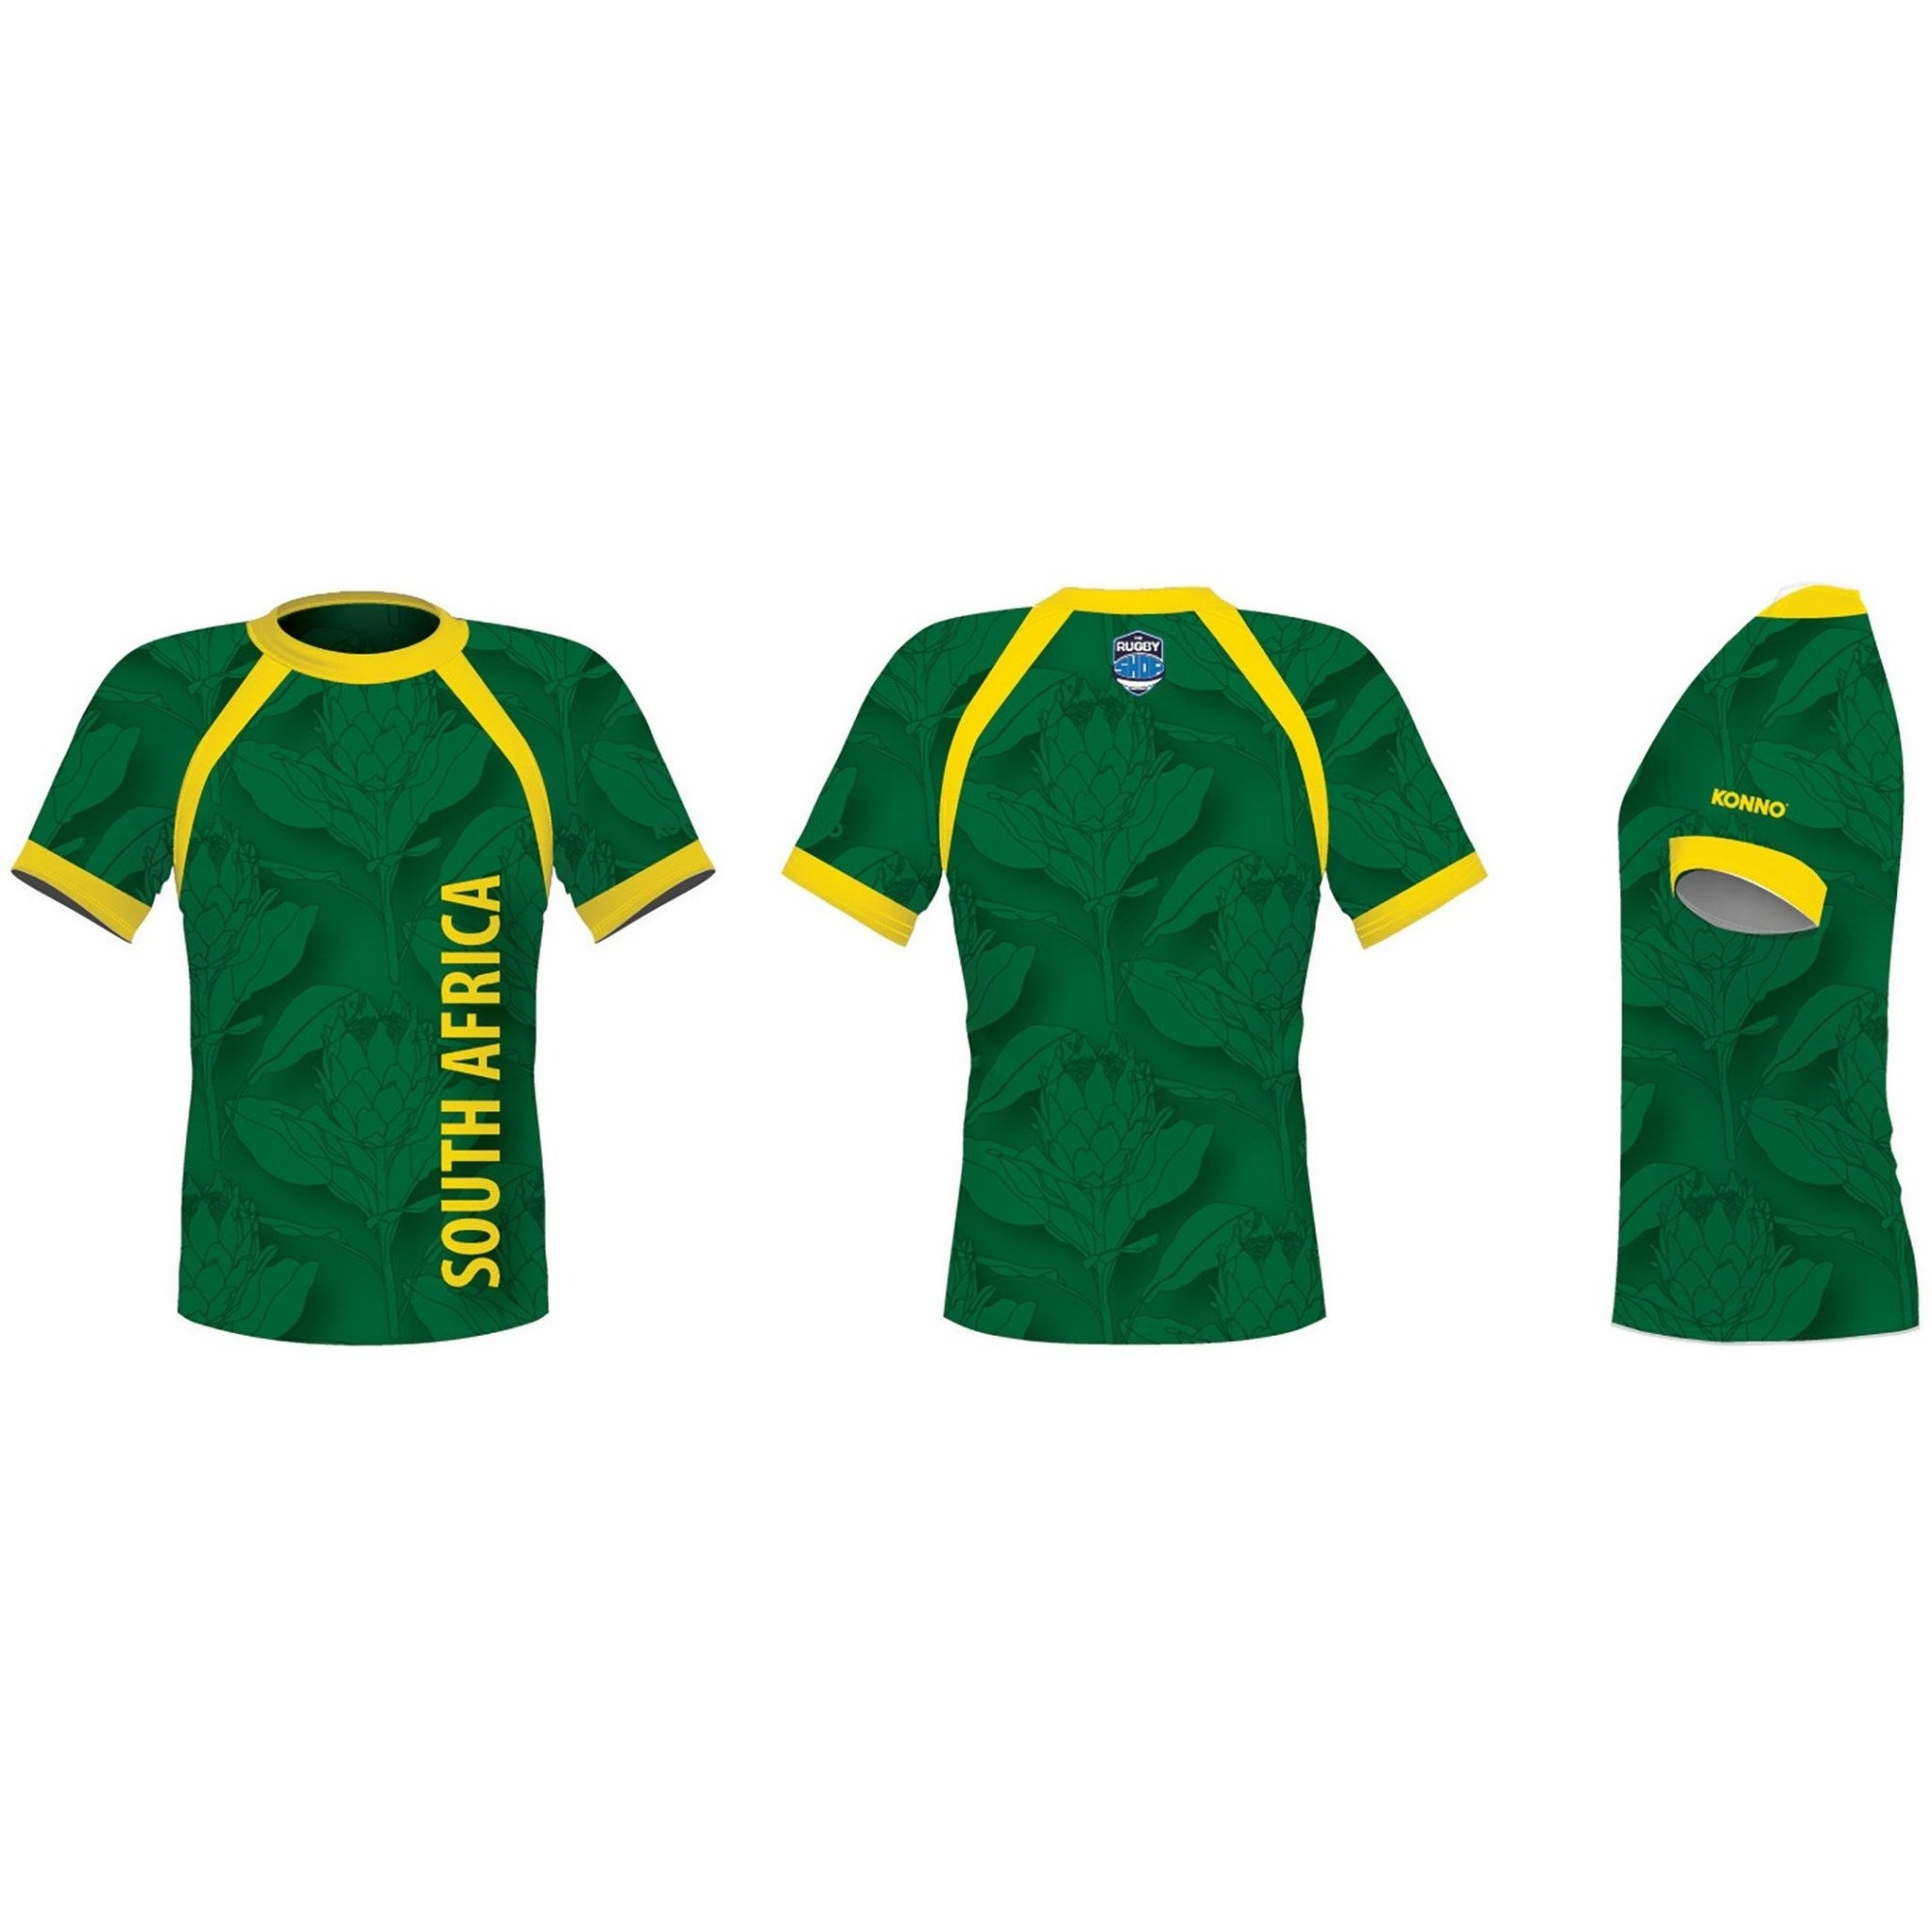 Konno International Supporter Tee - South Africa - www.therugbyshop.com